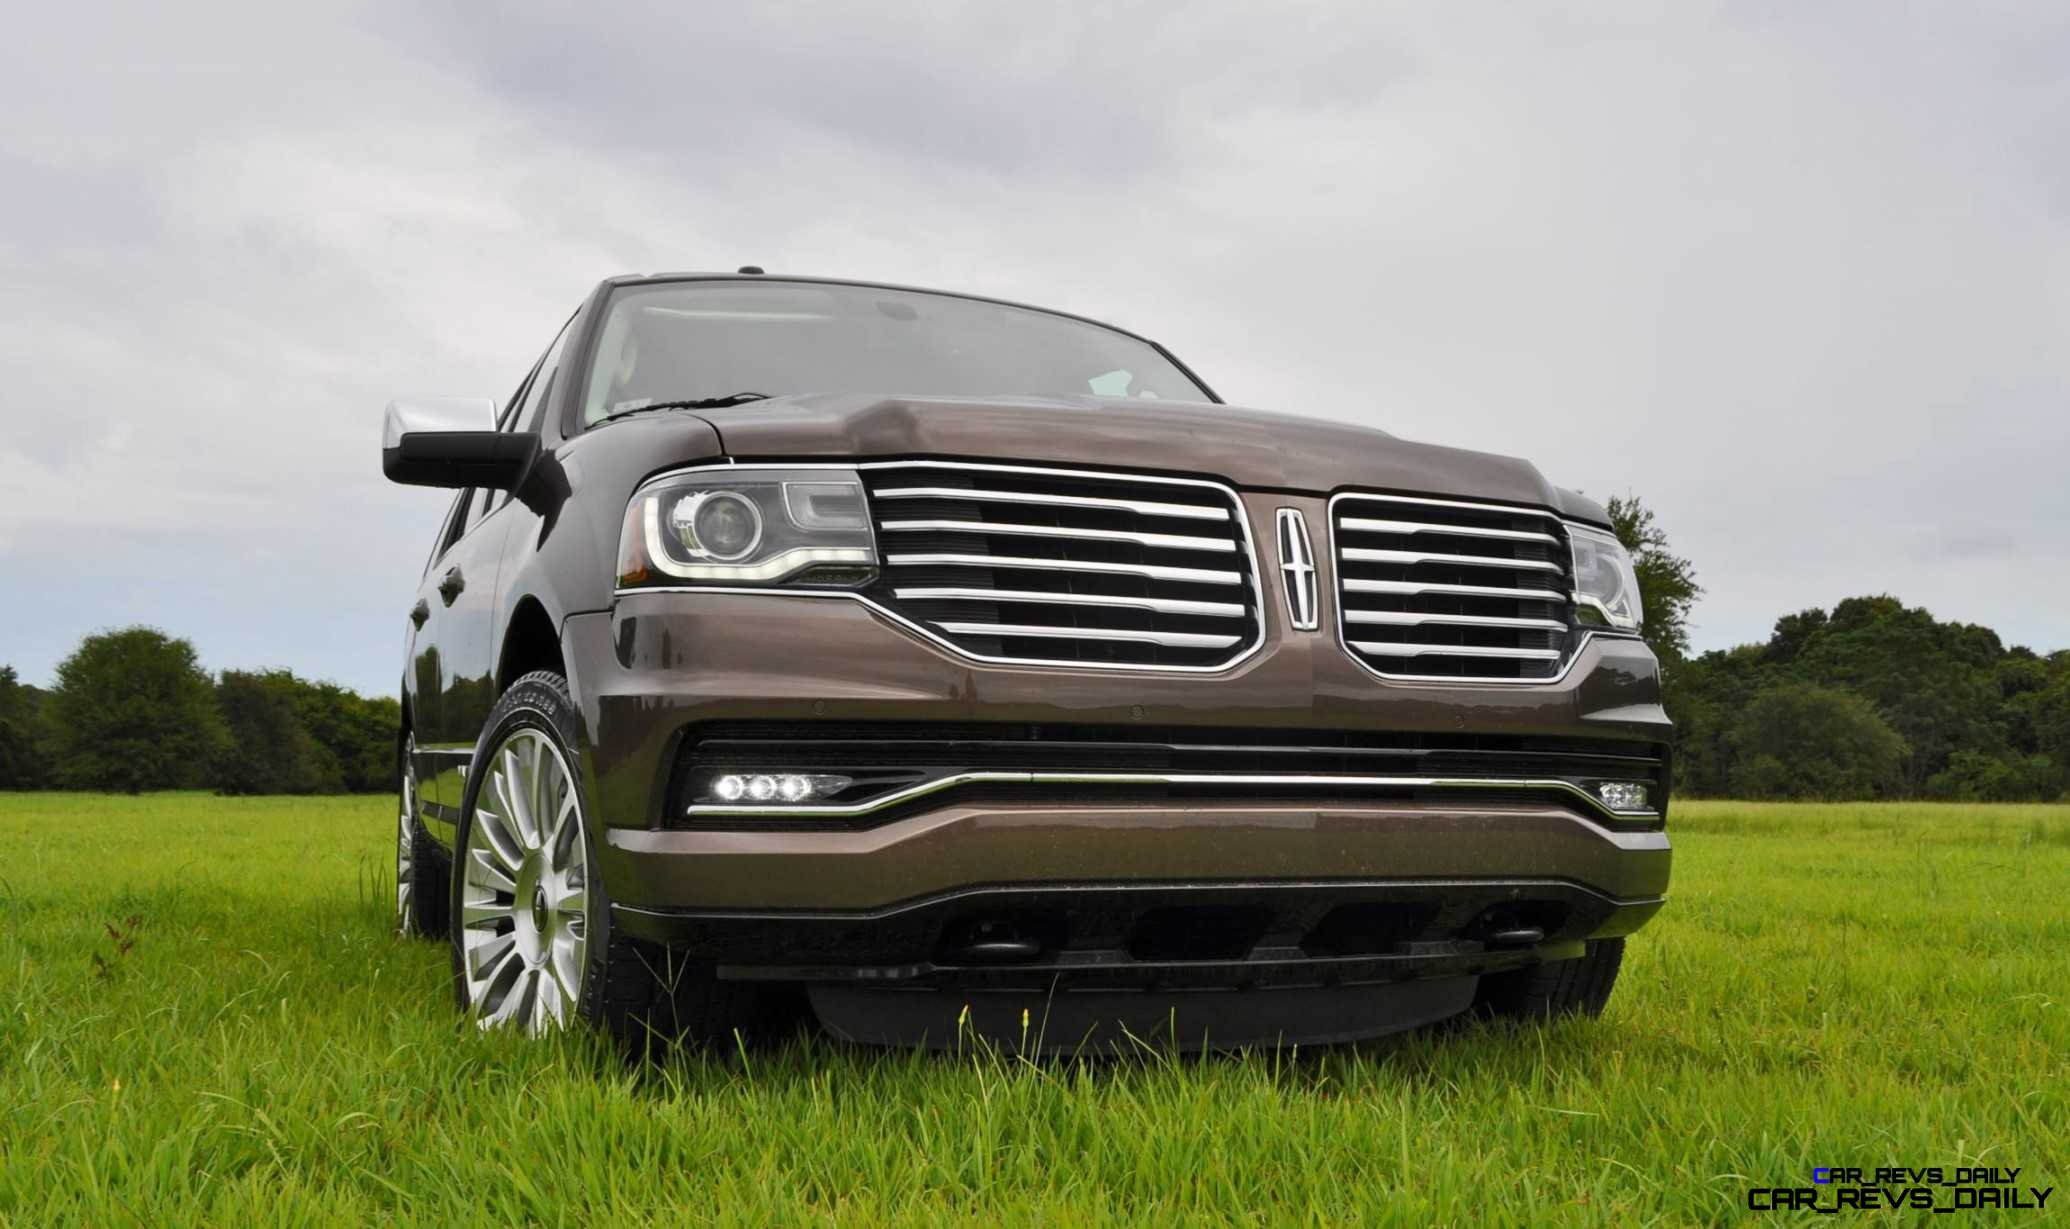 HD Road Test Review - 2015 Lincoln NAVIGATOR 4x4 Reserve 25